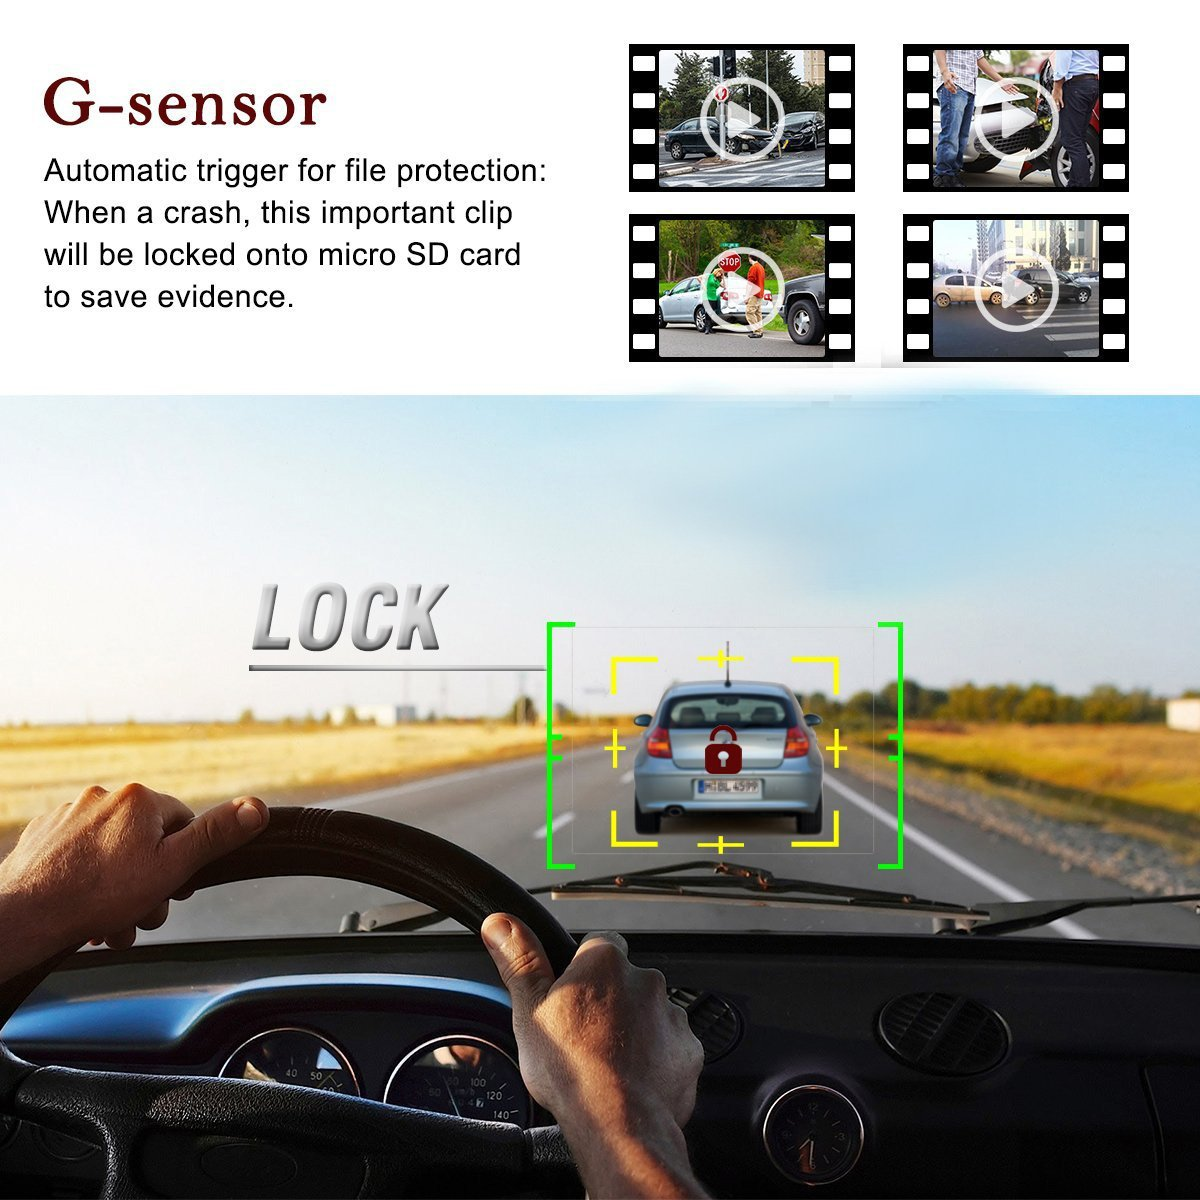 Dash Cam 1080P Full HD with 6 IR LED Night Vision,Dashboard Camera Recorder with High Sensitive G-sensor,Motion Detection,Parking Monitor,Loop Recording,140/°Wide Angle